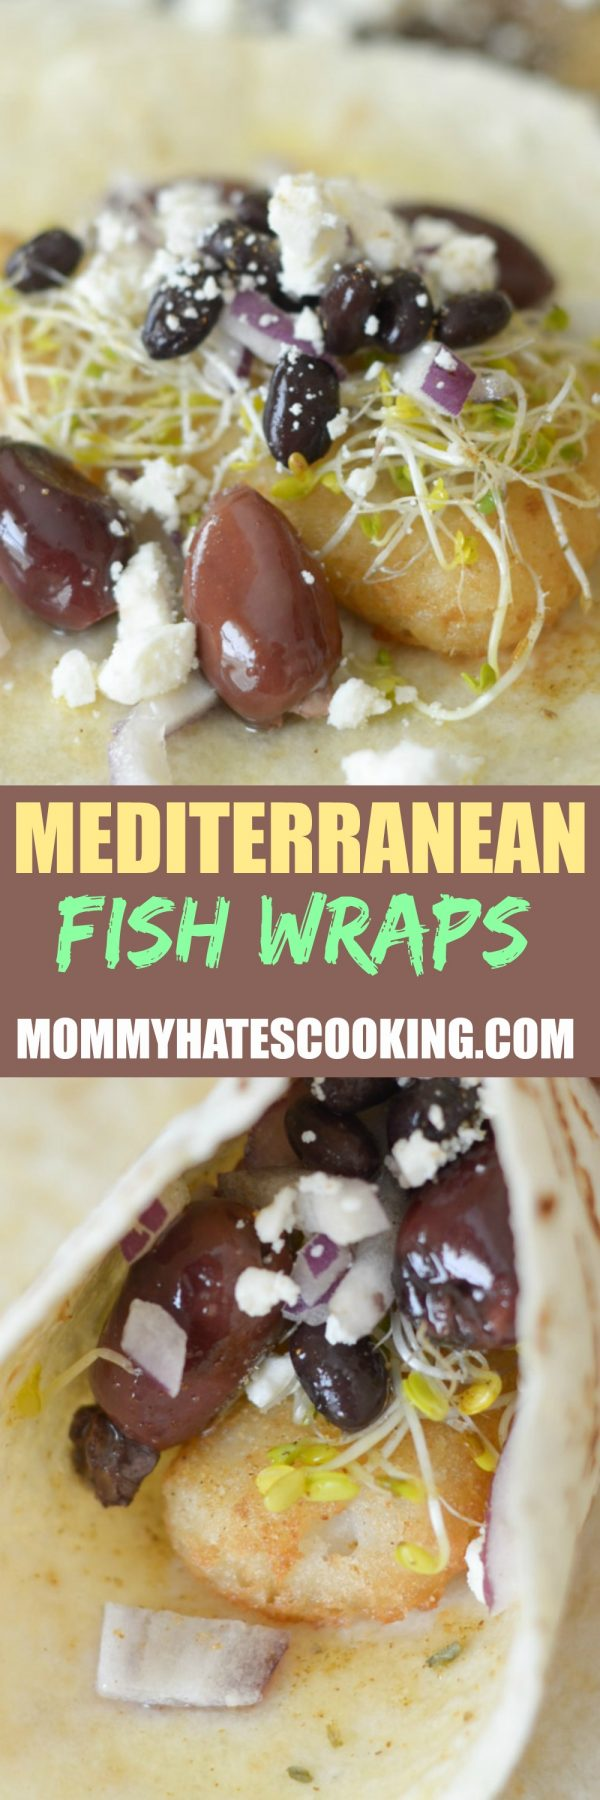 Mediterranean Fish Wraps